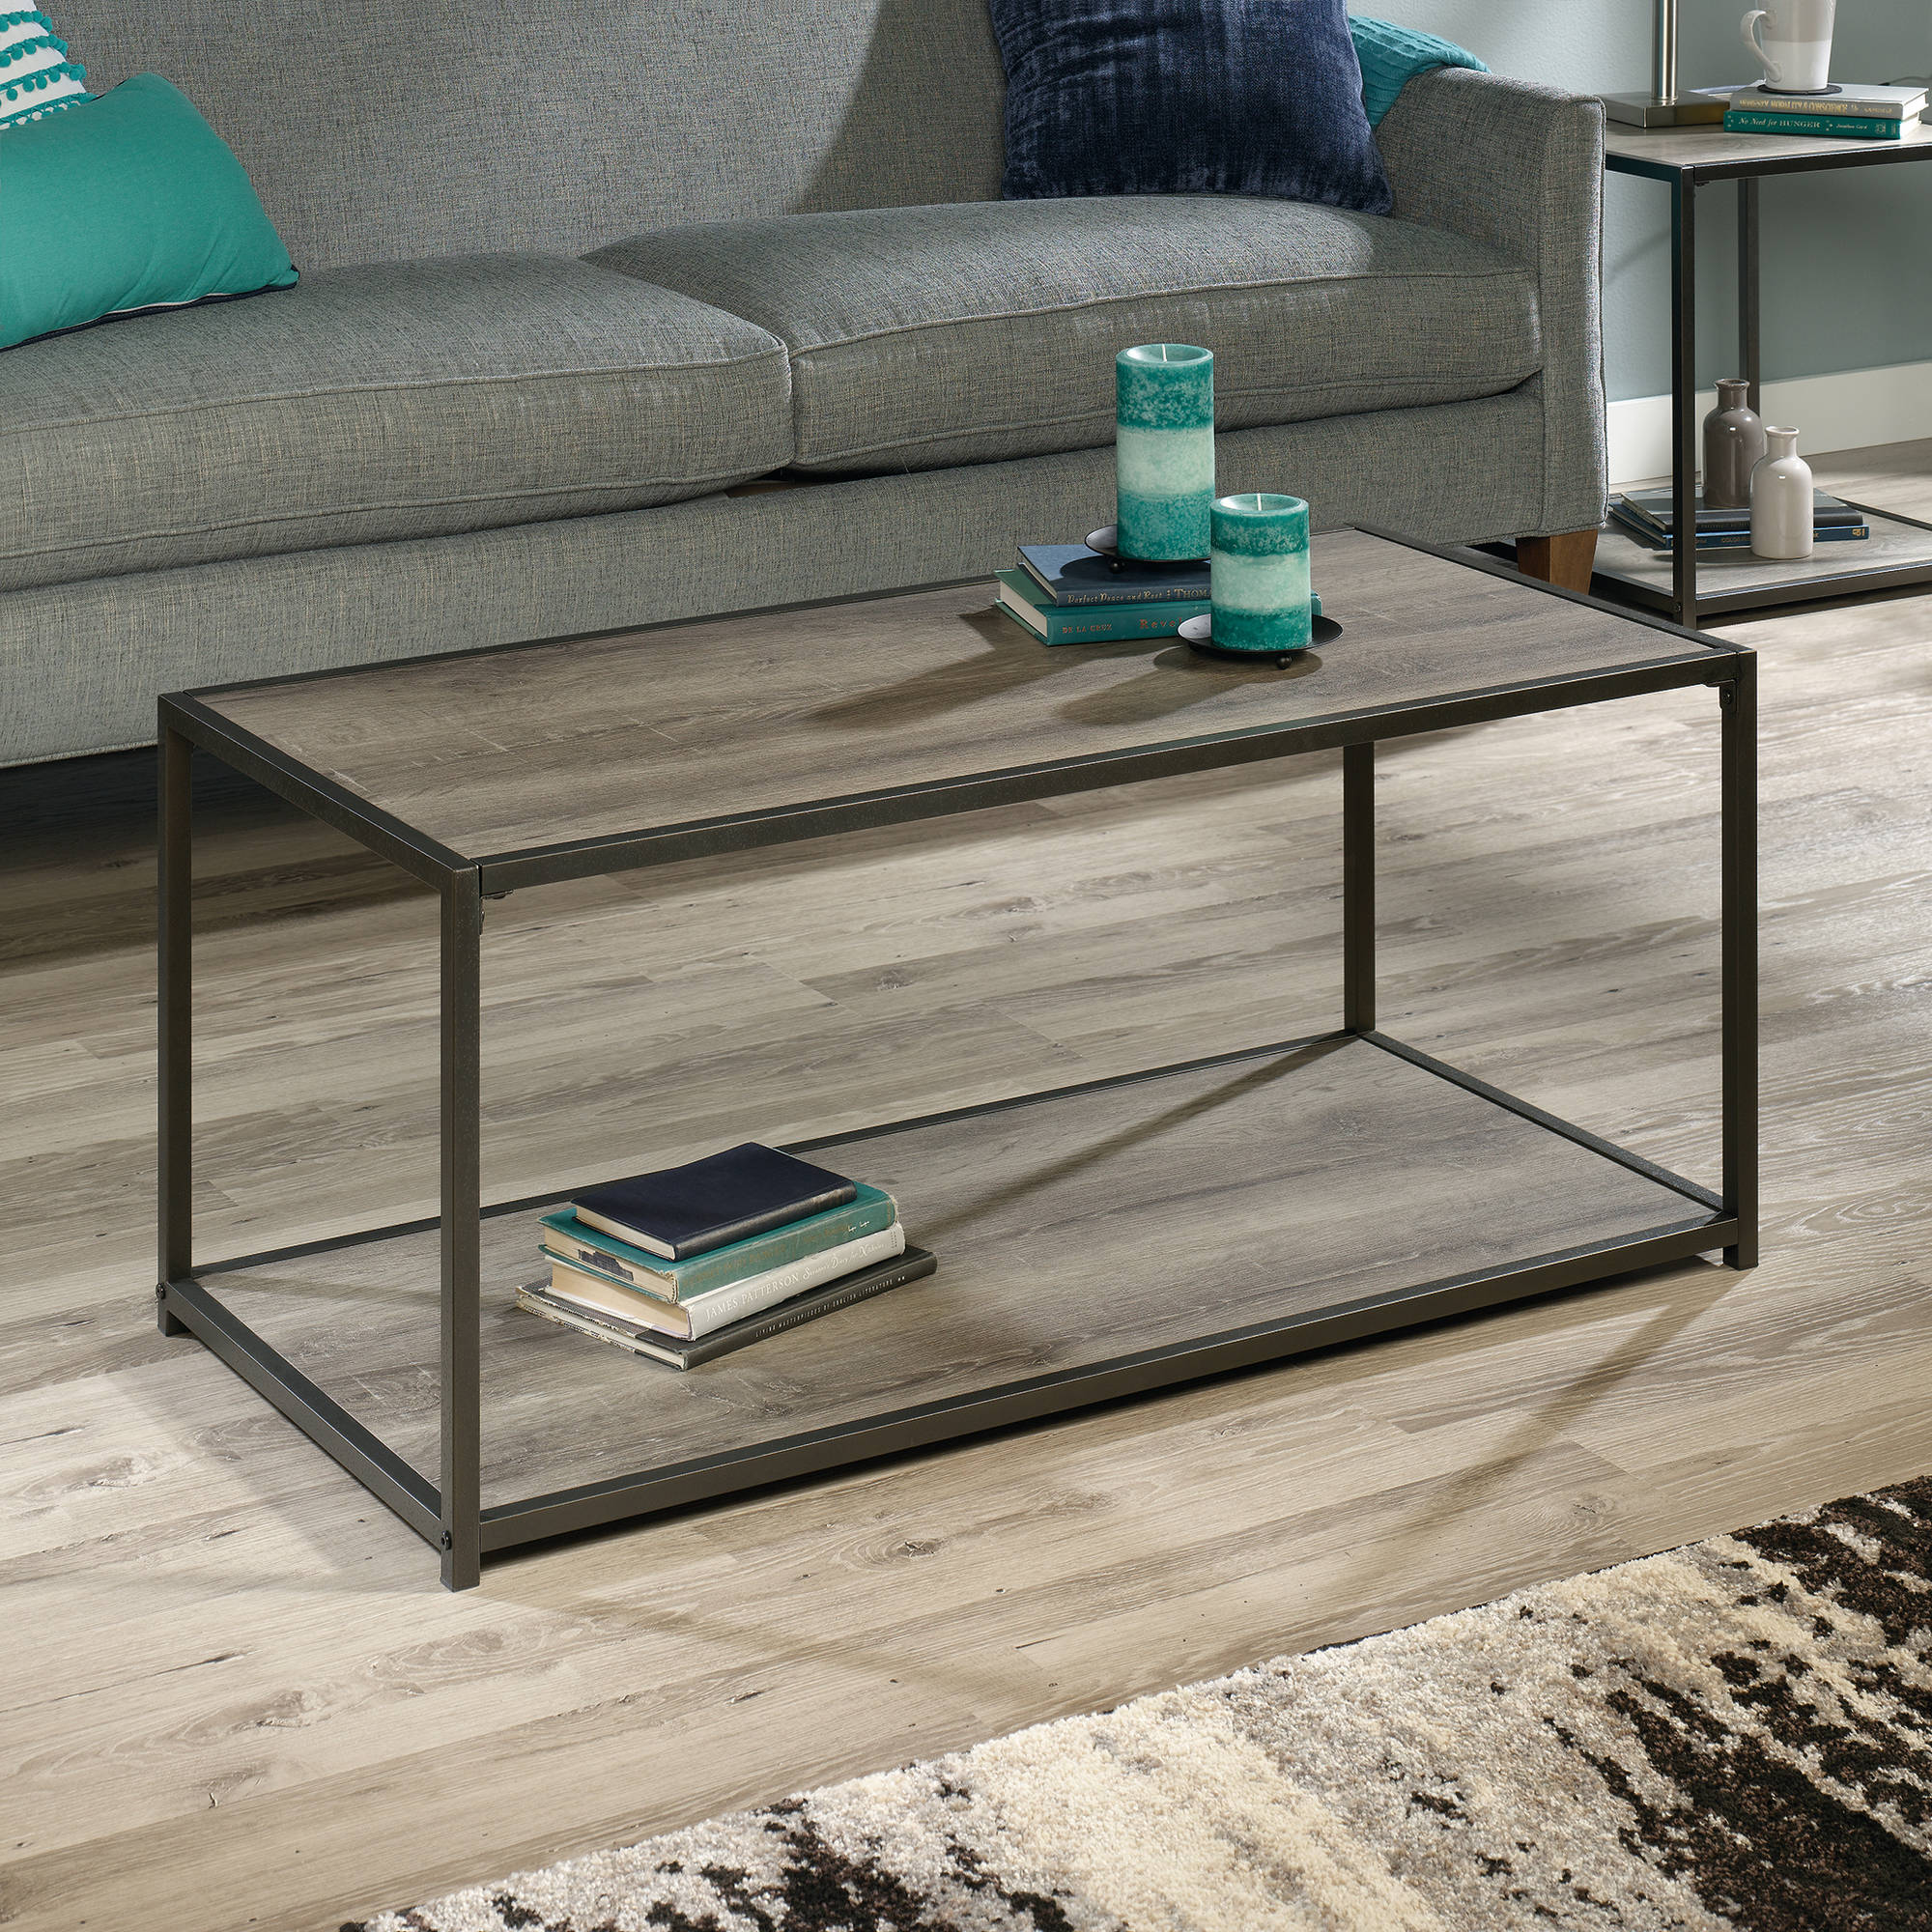 Mainstays Metro Coffee Table, Multiple Finishes - Walmart.com